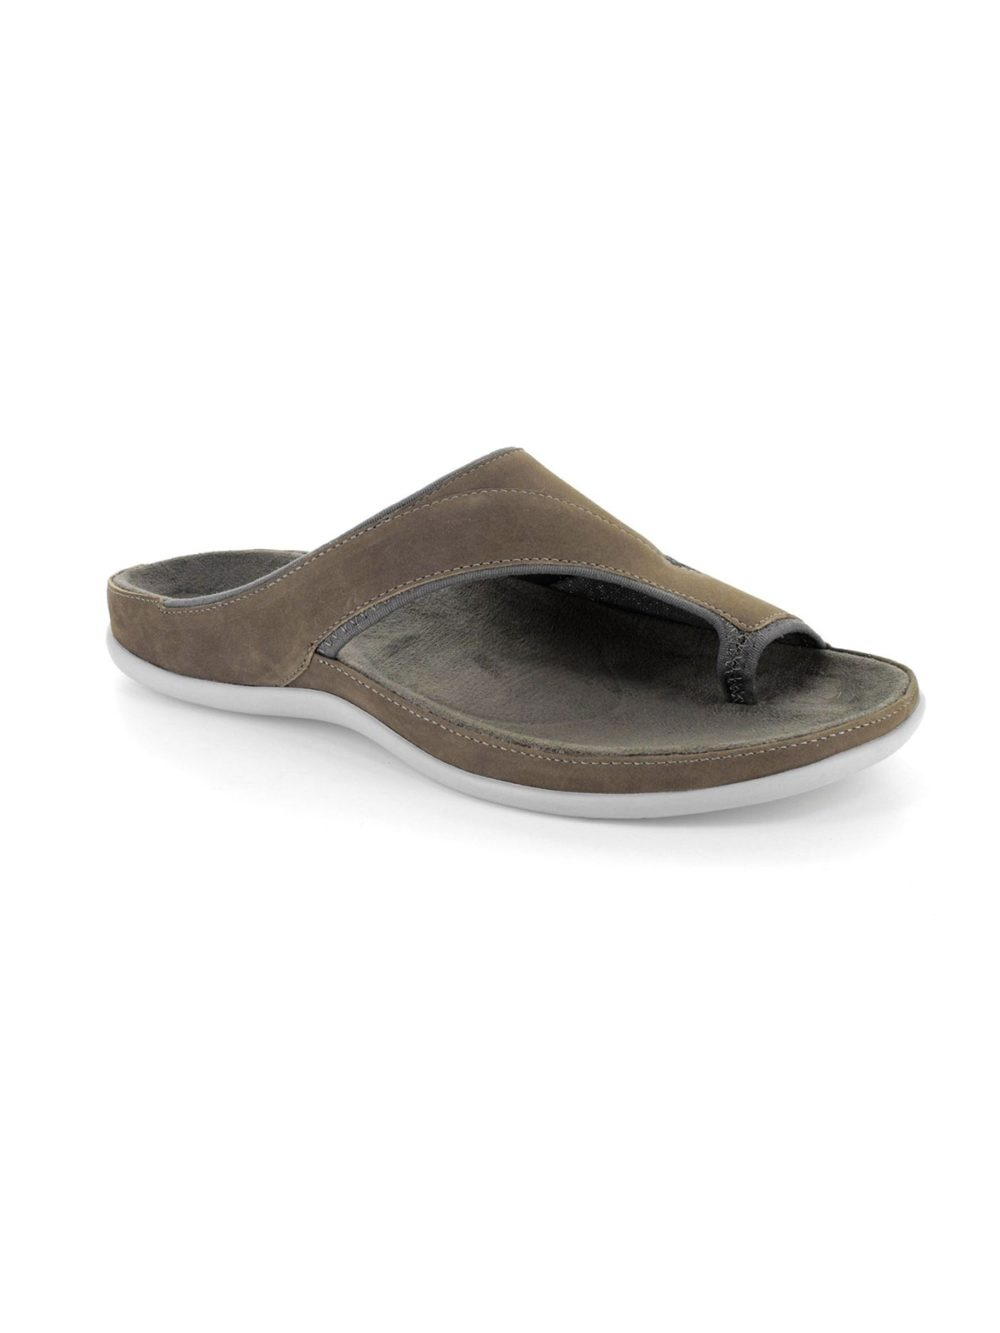 Colorado Sandal Strive Footwear Katie Kerr Women's Clothing